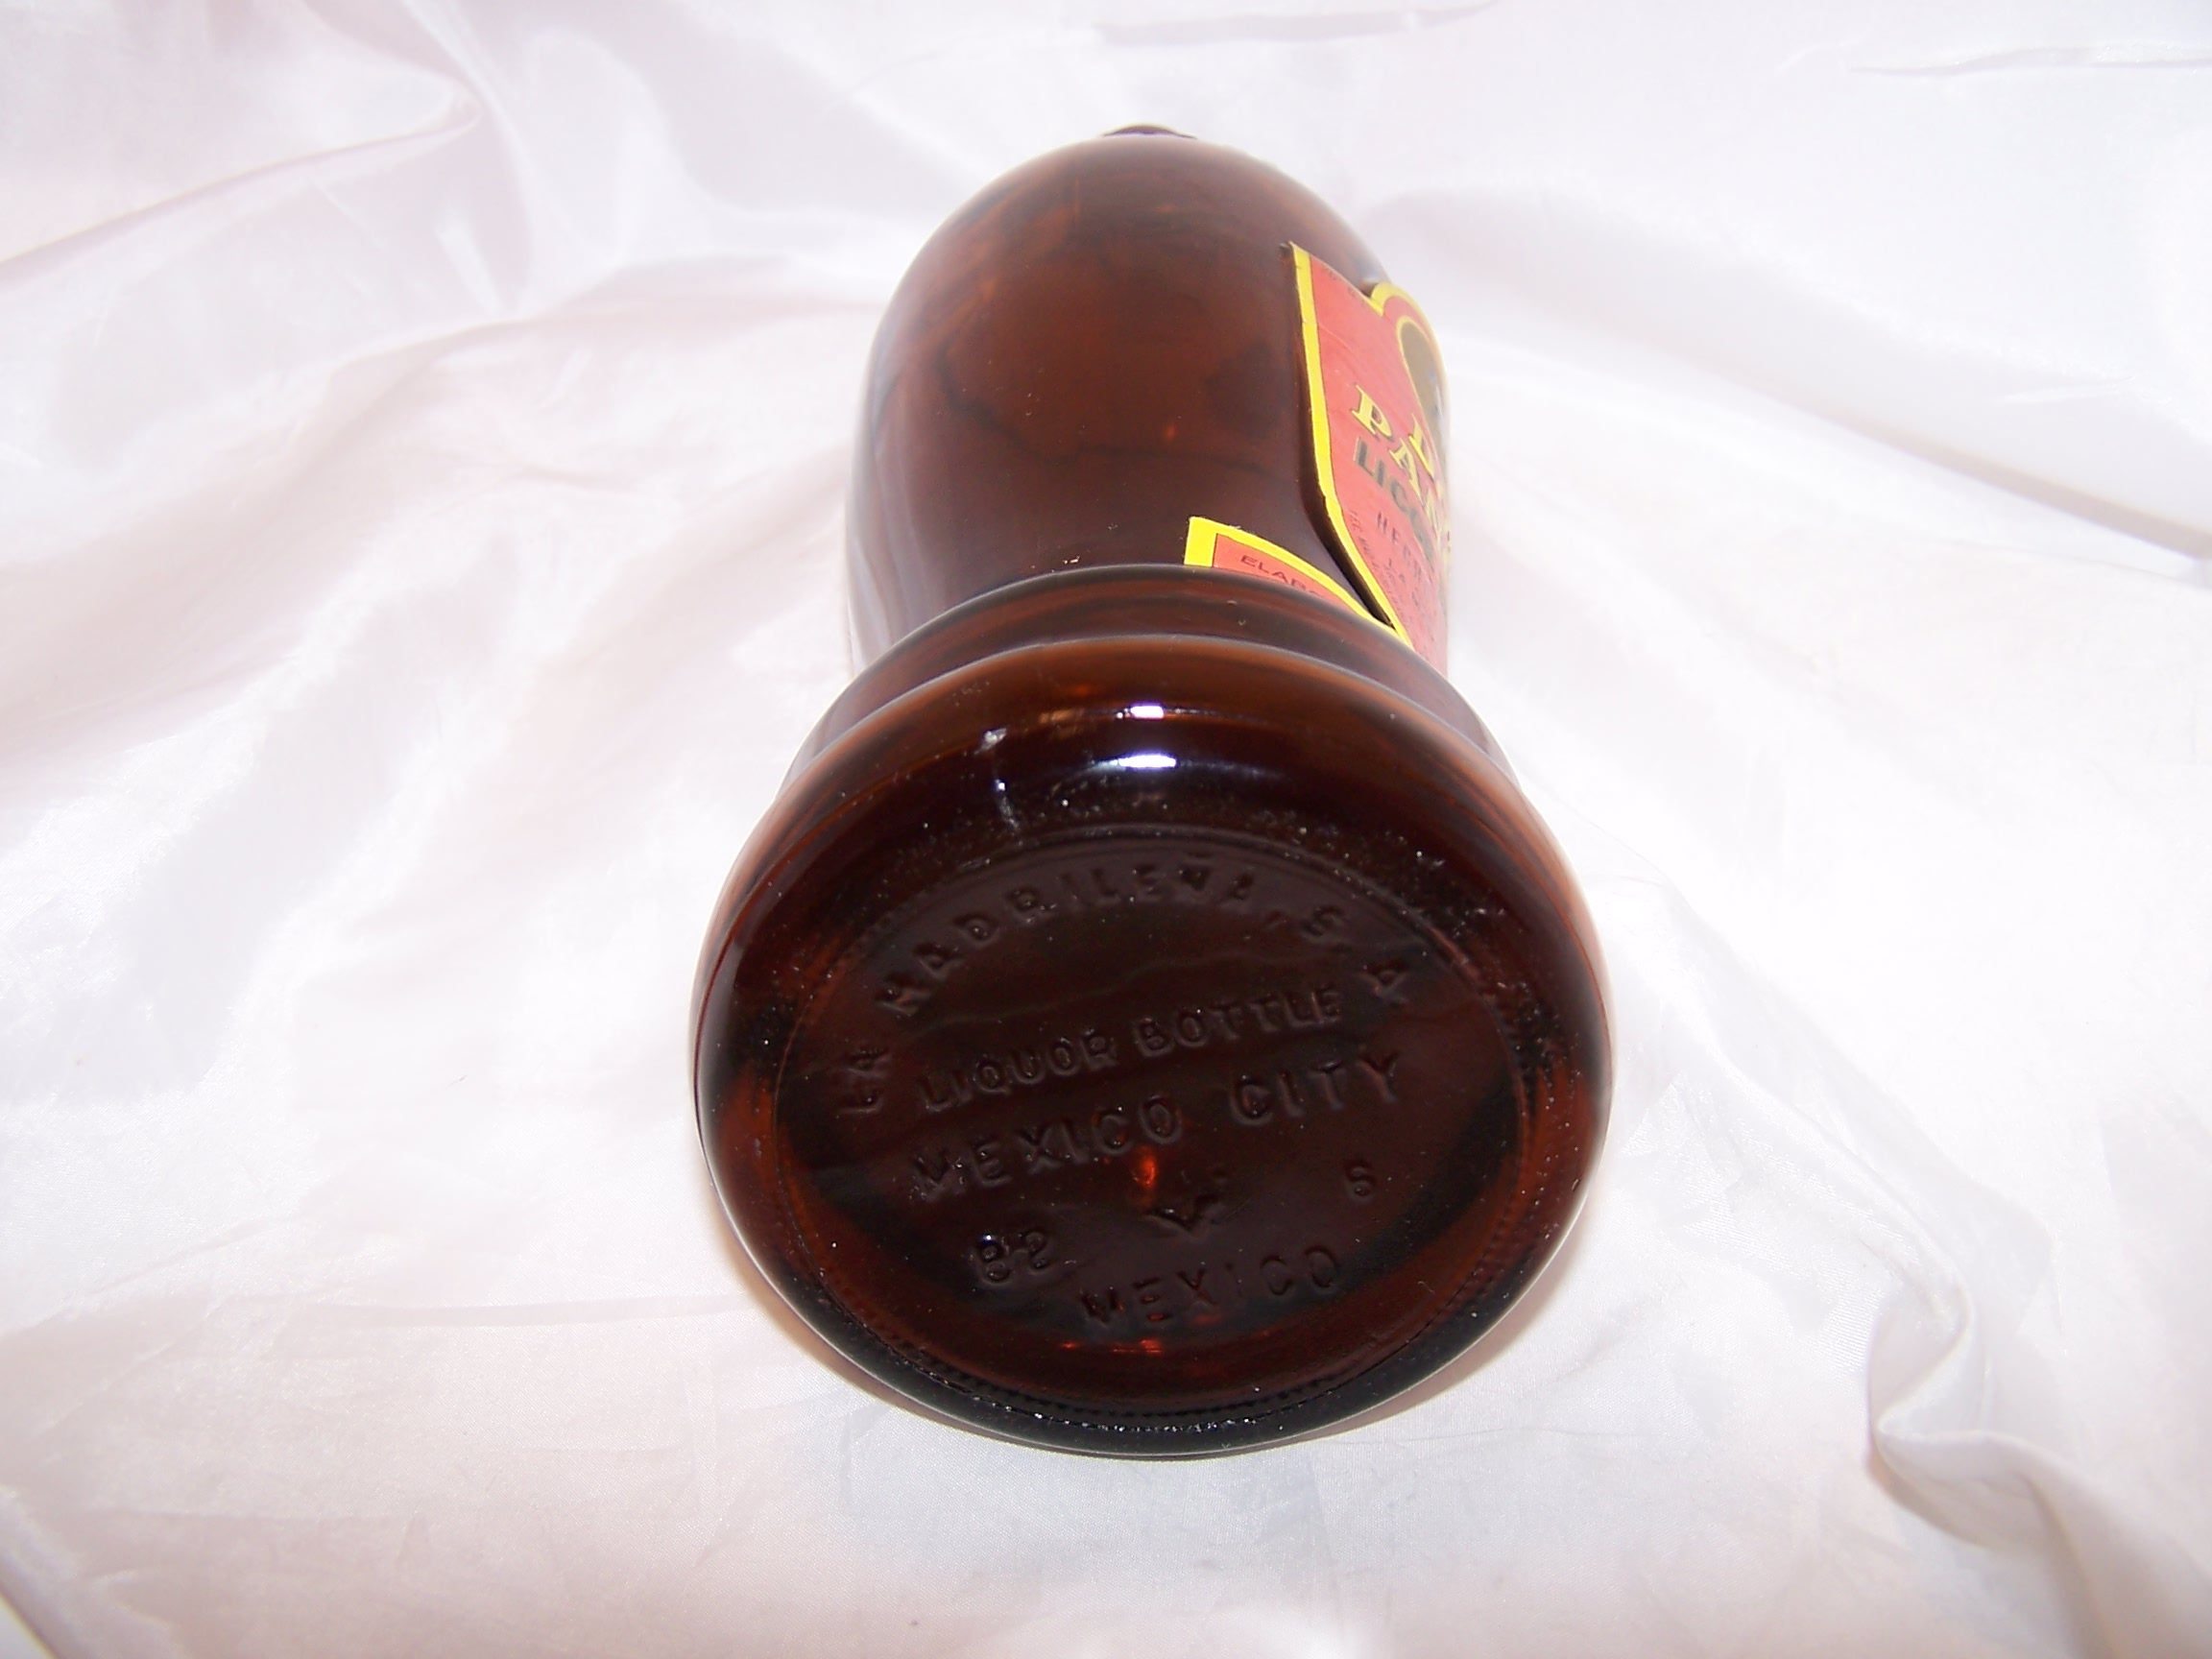 Image 5 of Don Pancho Licor de Cafe Brown Bottle, Mexico, Large, Empty